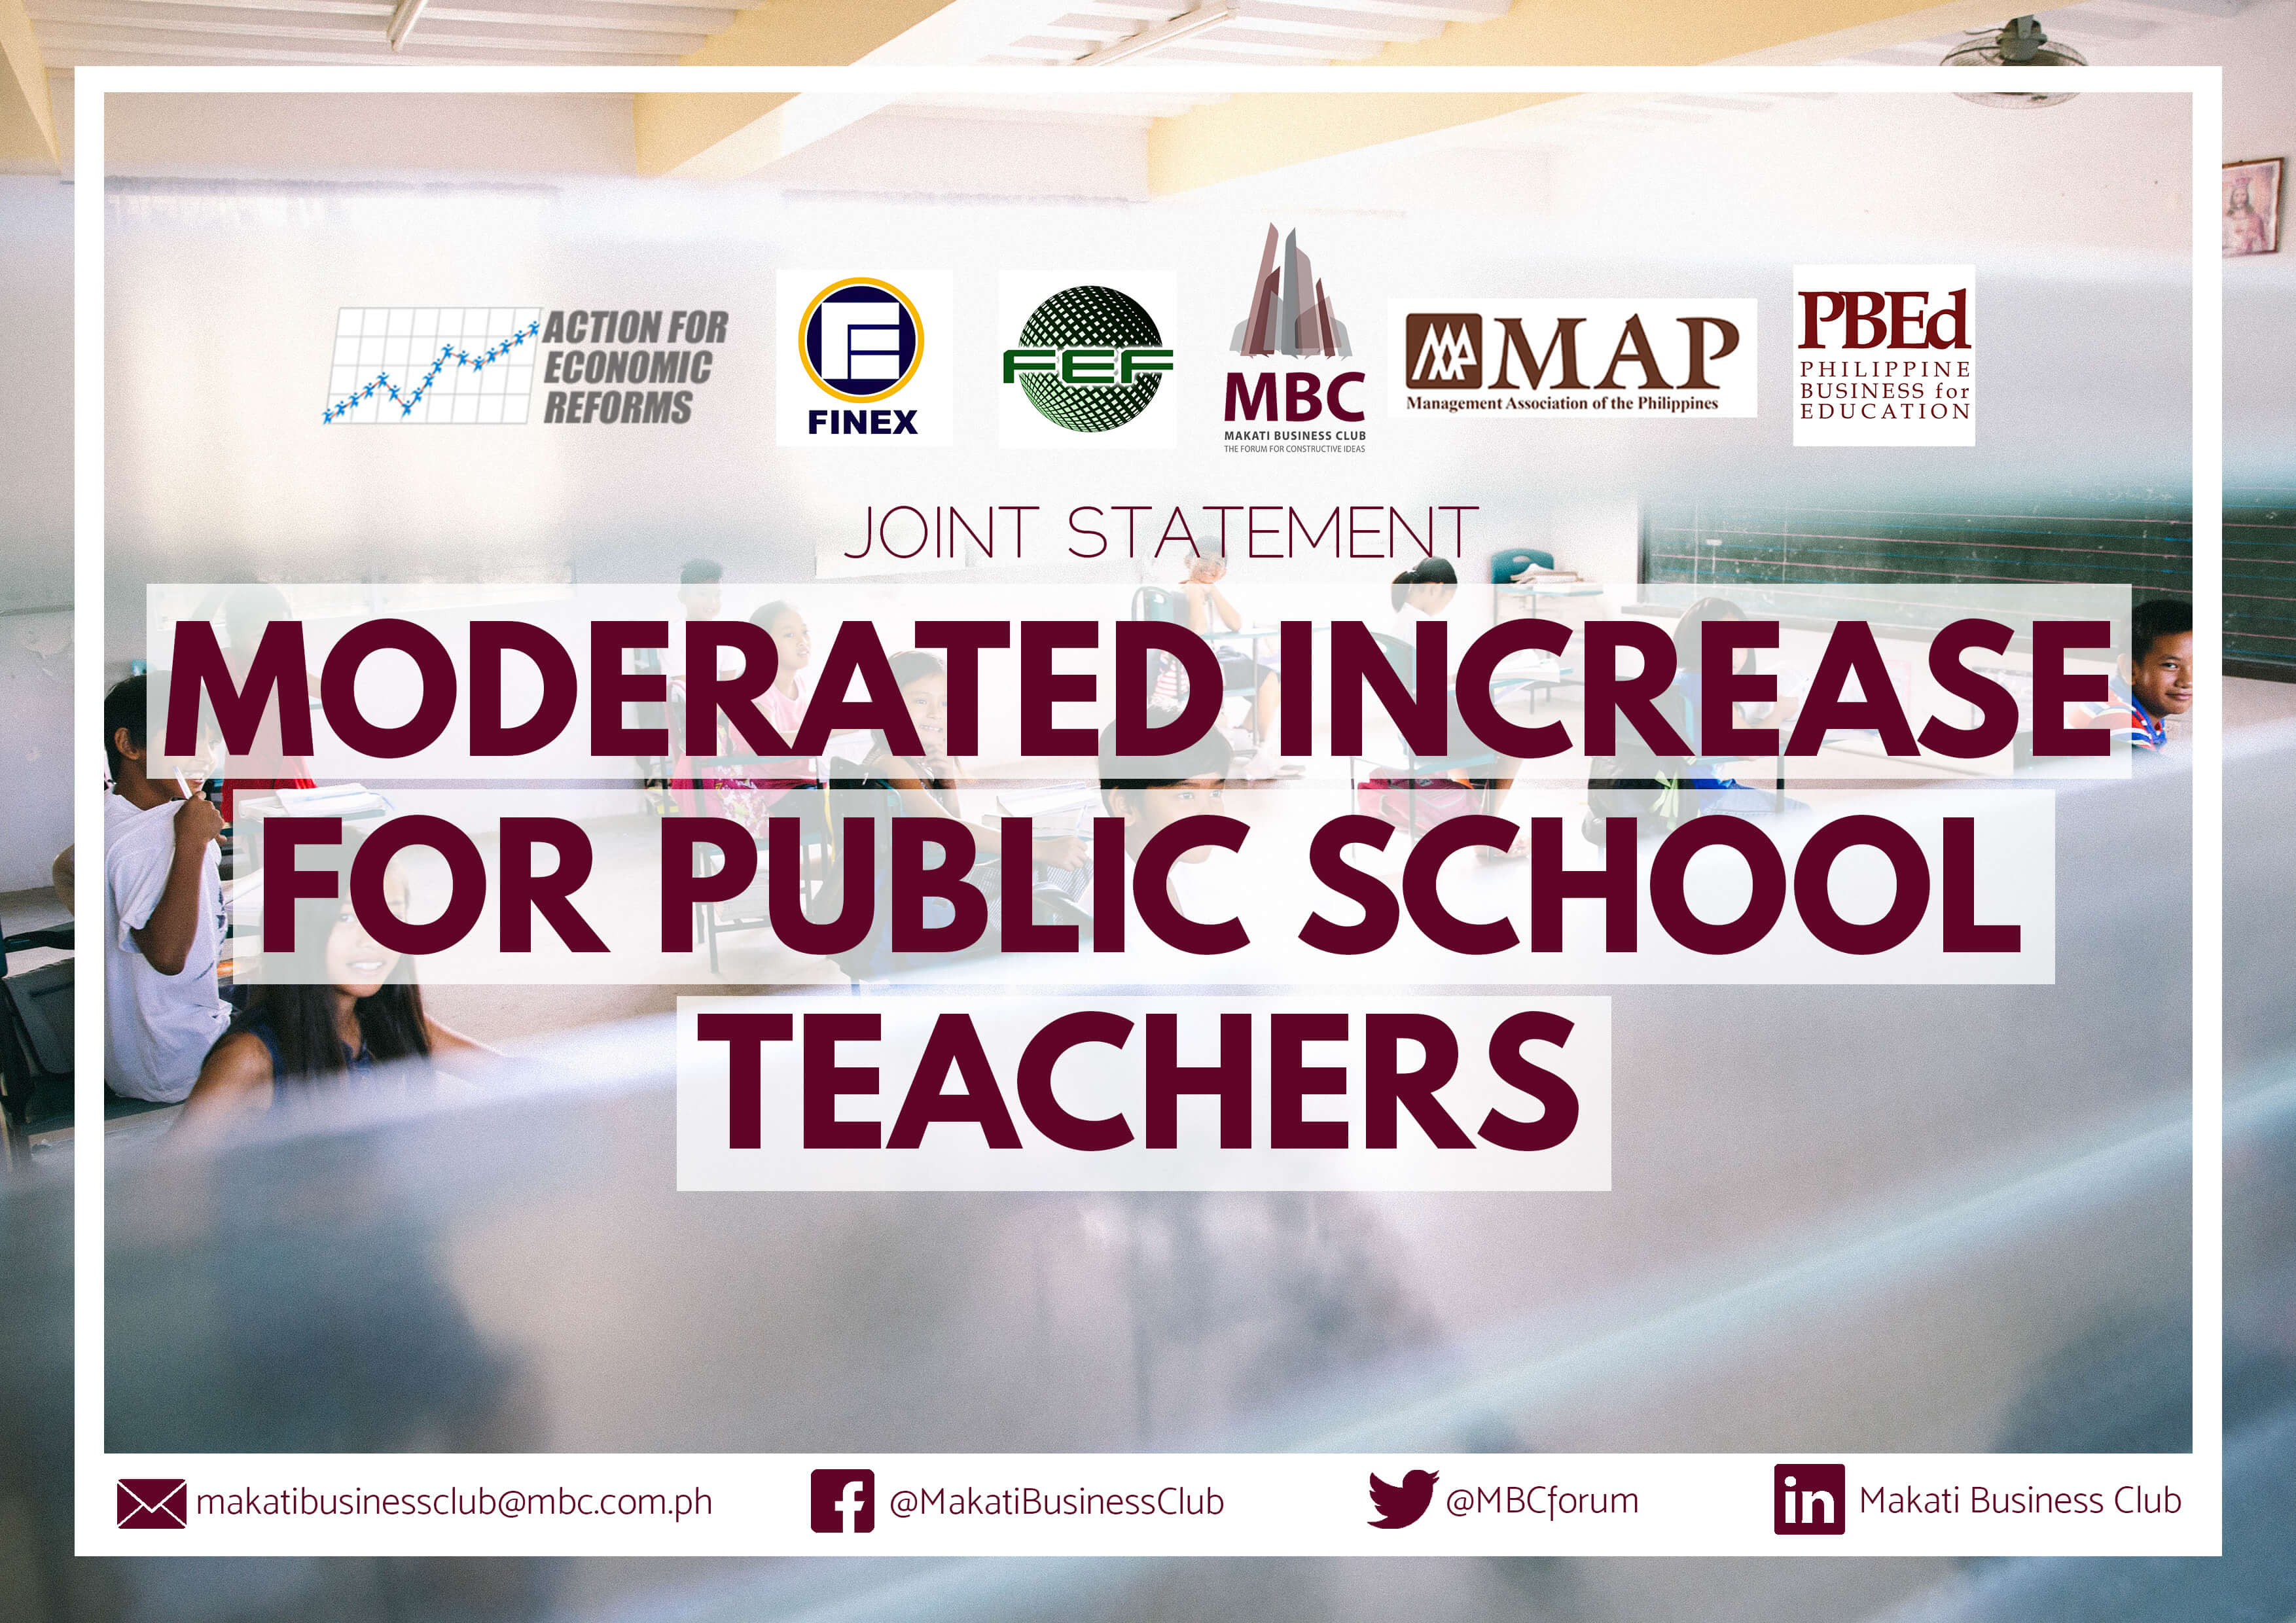 Joint Statement of Support for Moderated Increase in Pay of Public School Teachers and for Fiscal Prudence